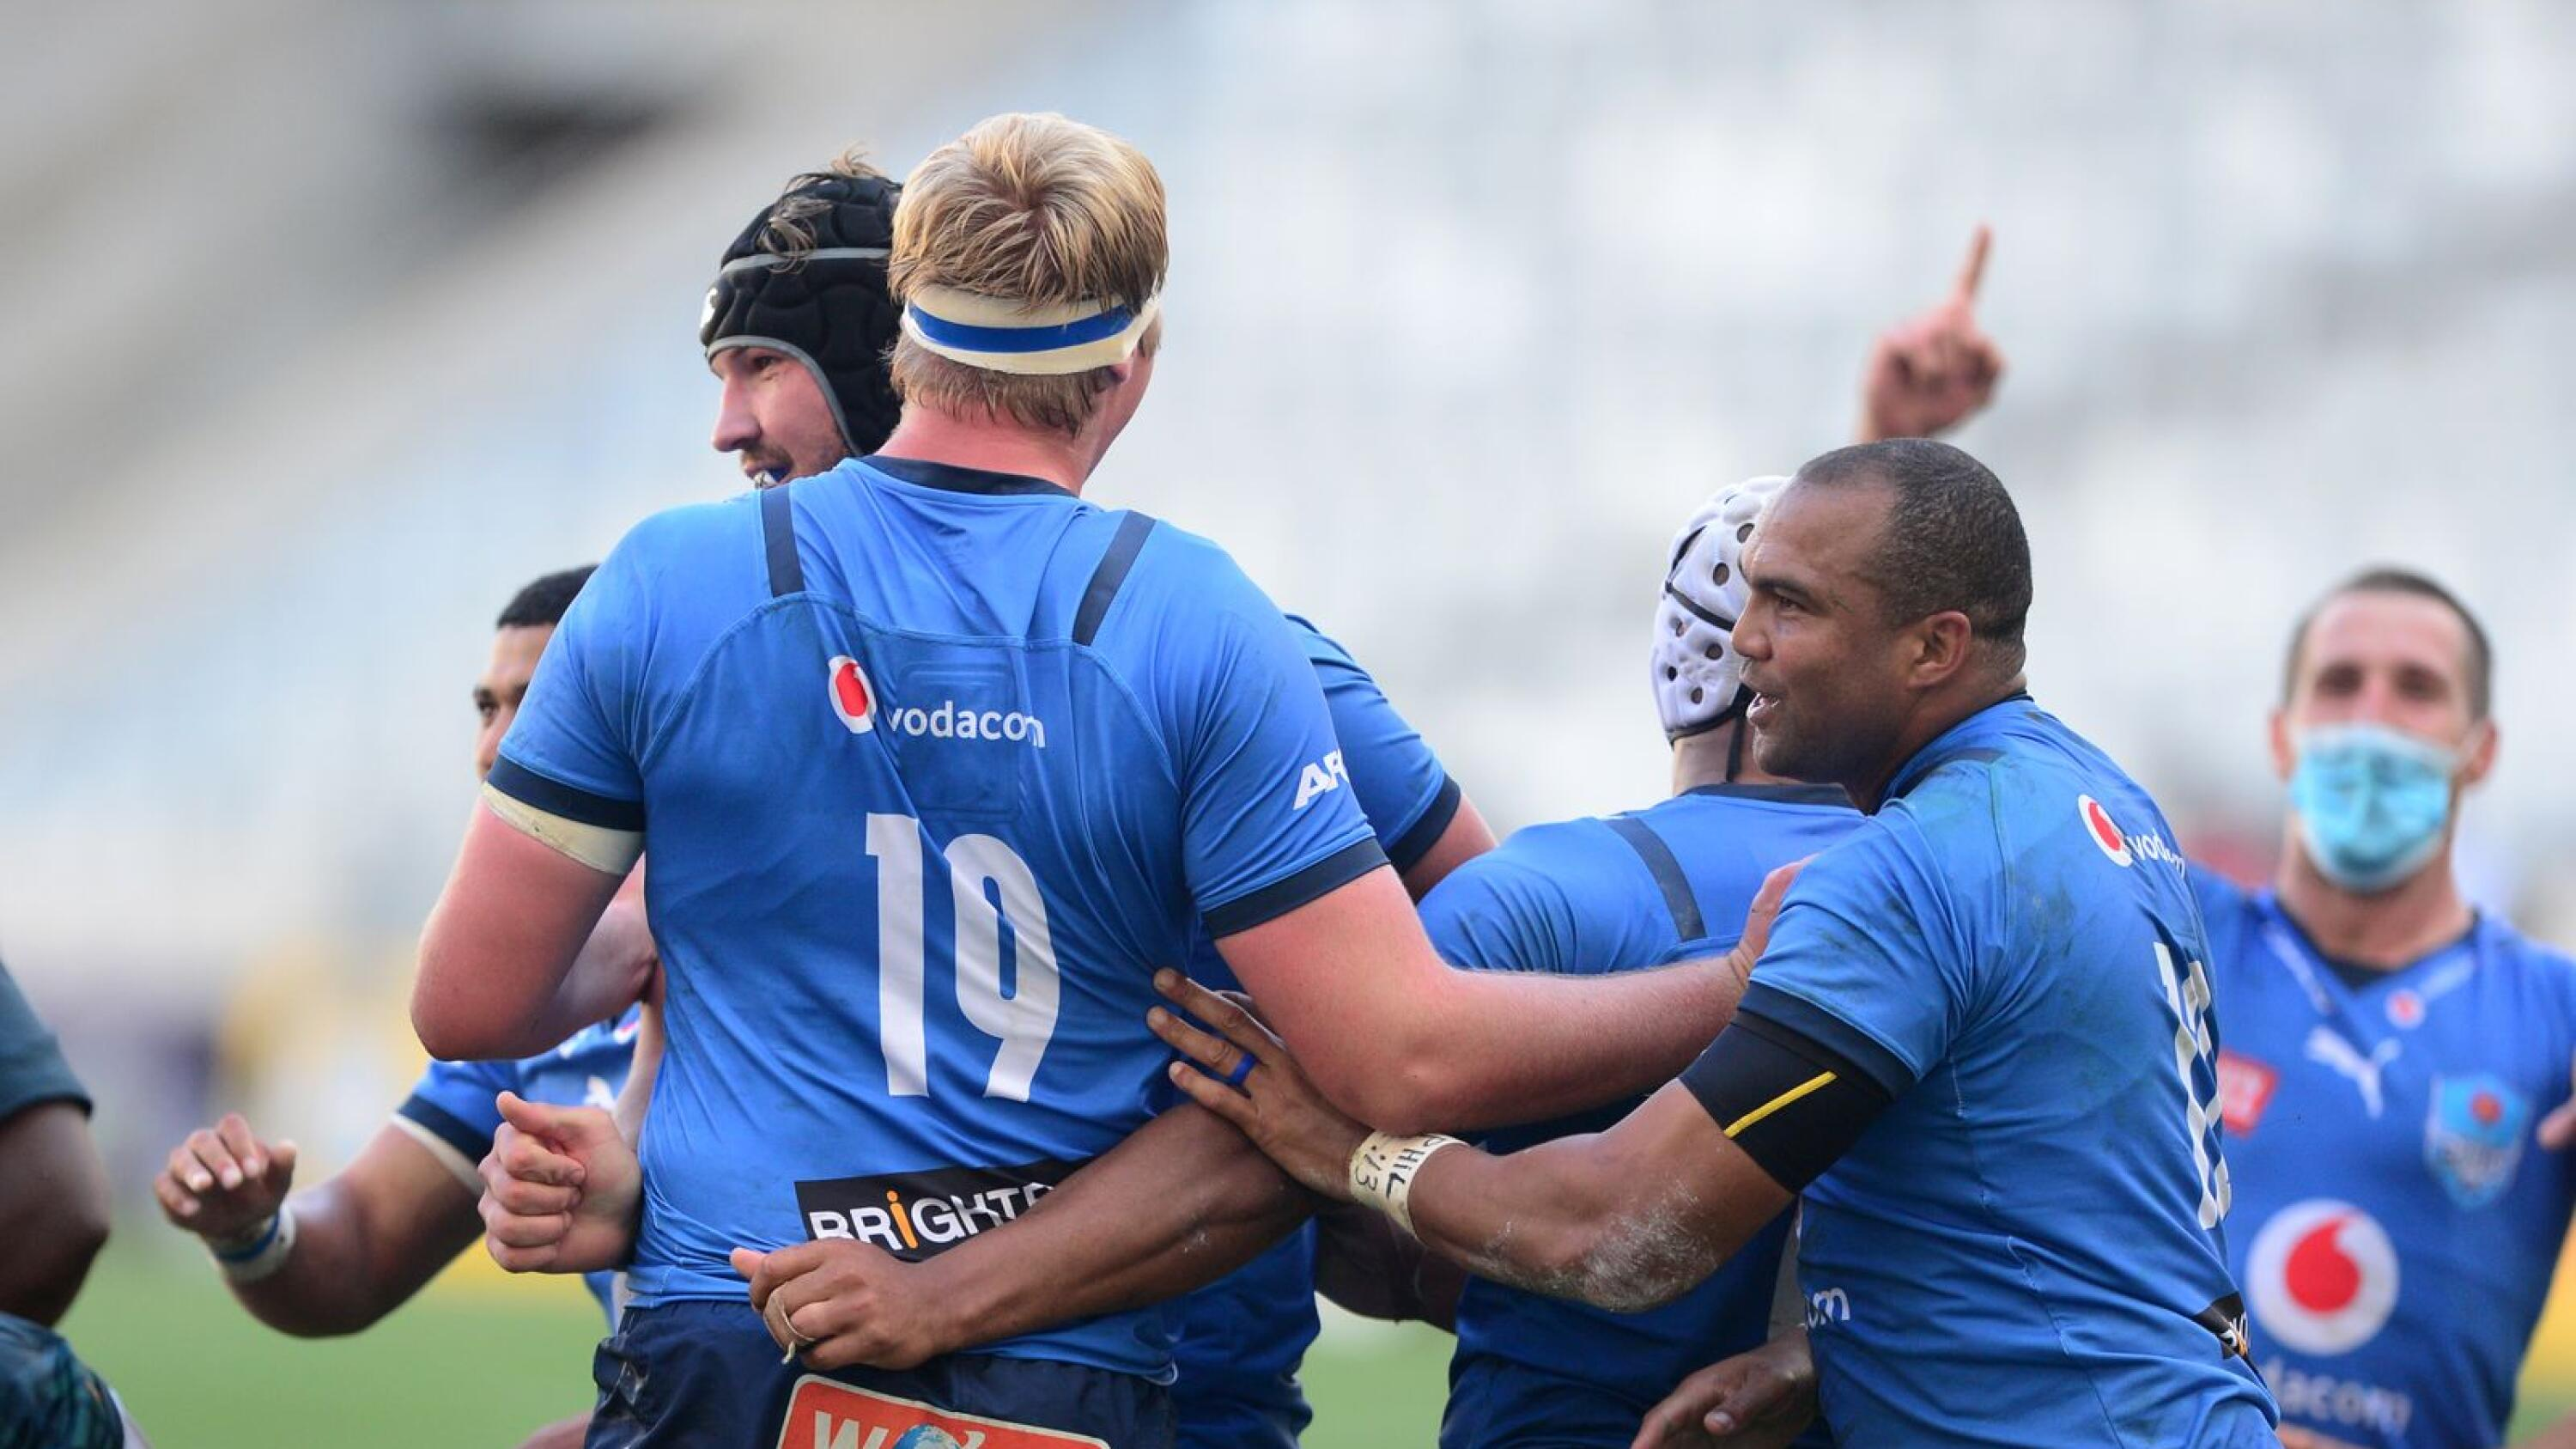 Bulls players celebrate victory at the final whistle during their match against South Africa A at Cape Town Stadium on Saturday